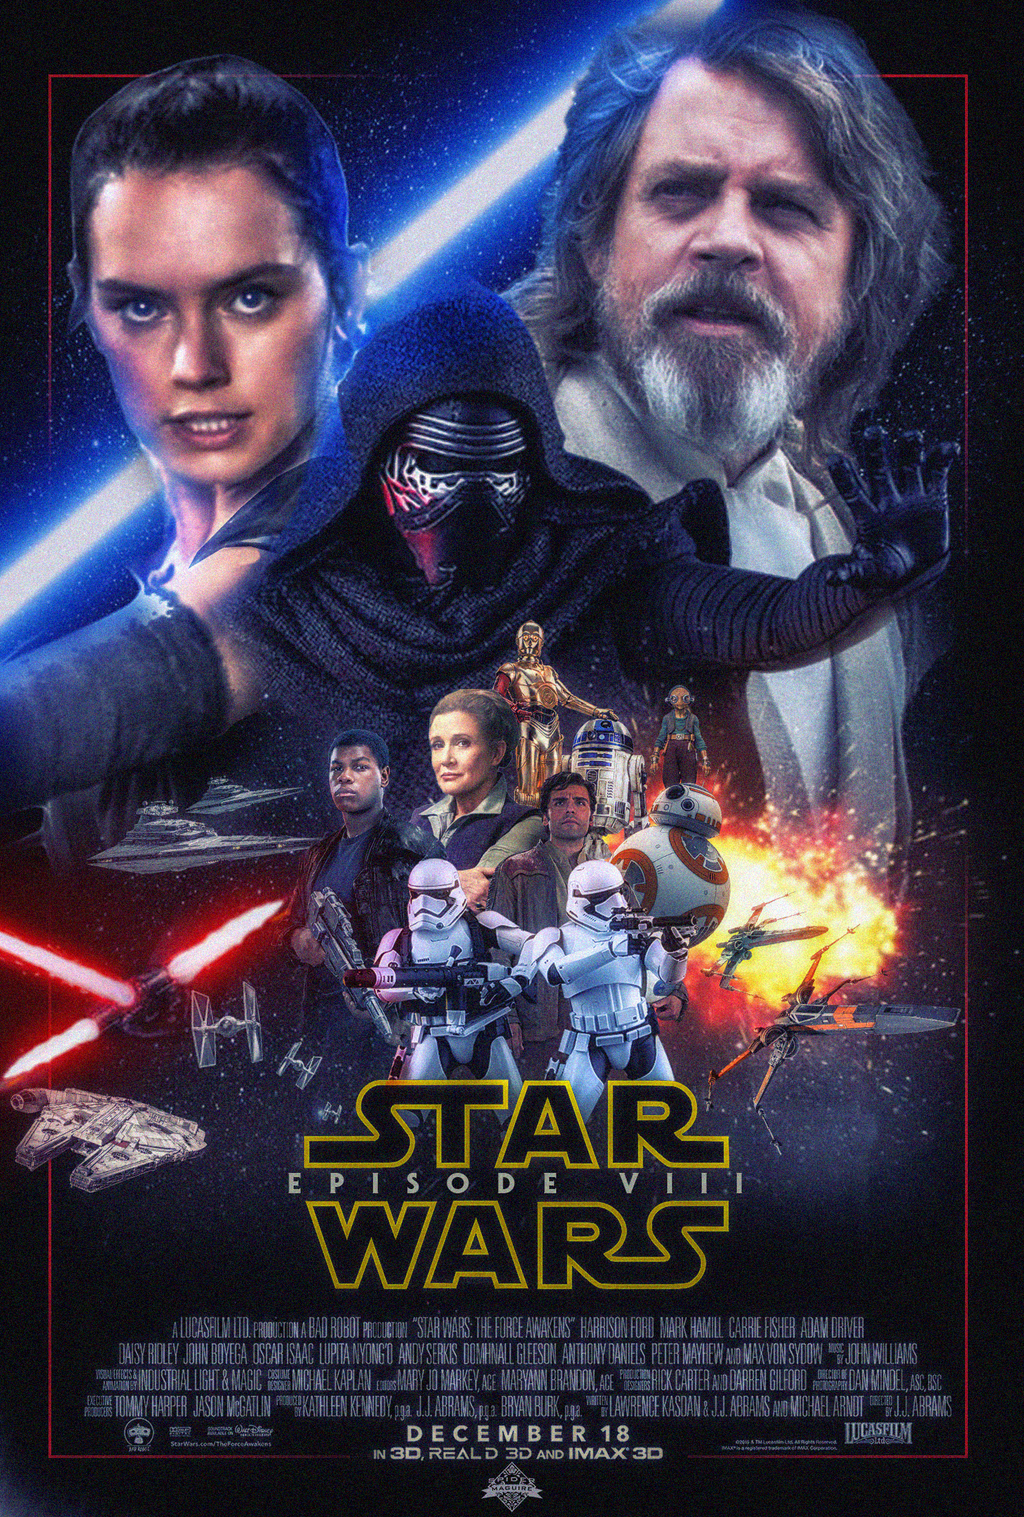 Star Wars Episdoe 8 Poster v2 by Spider-maguire on DeviantArt